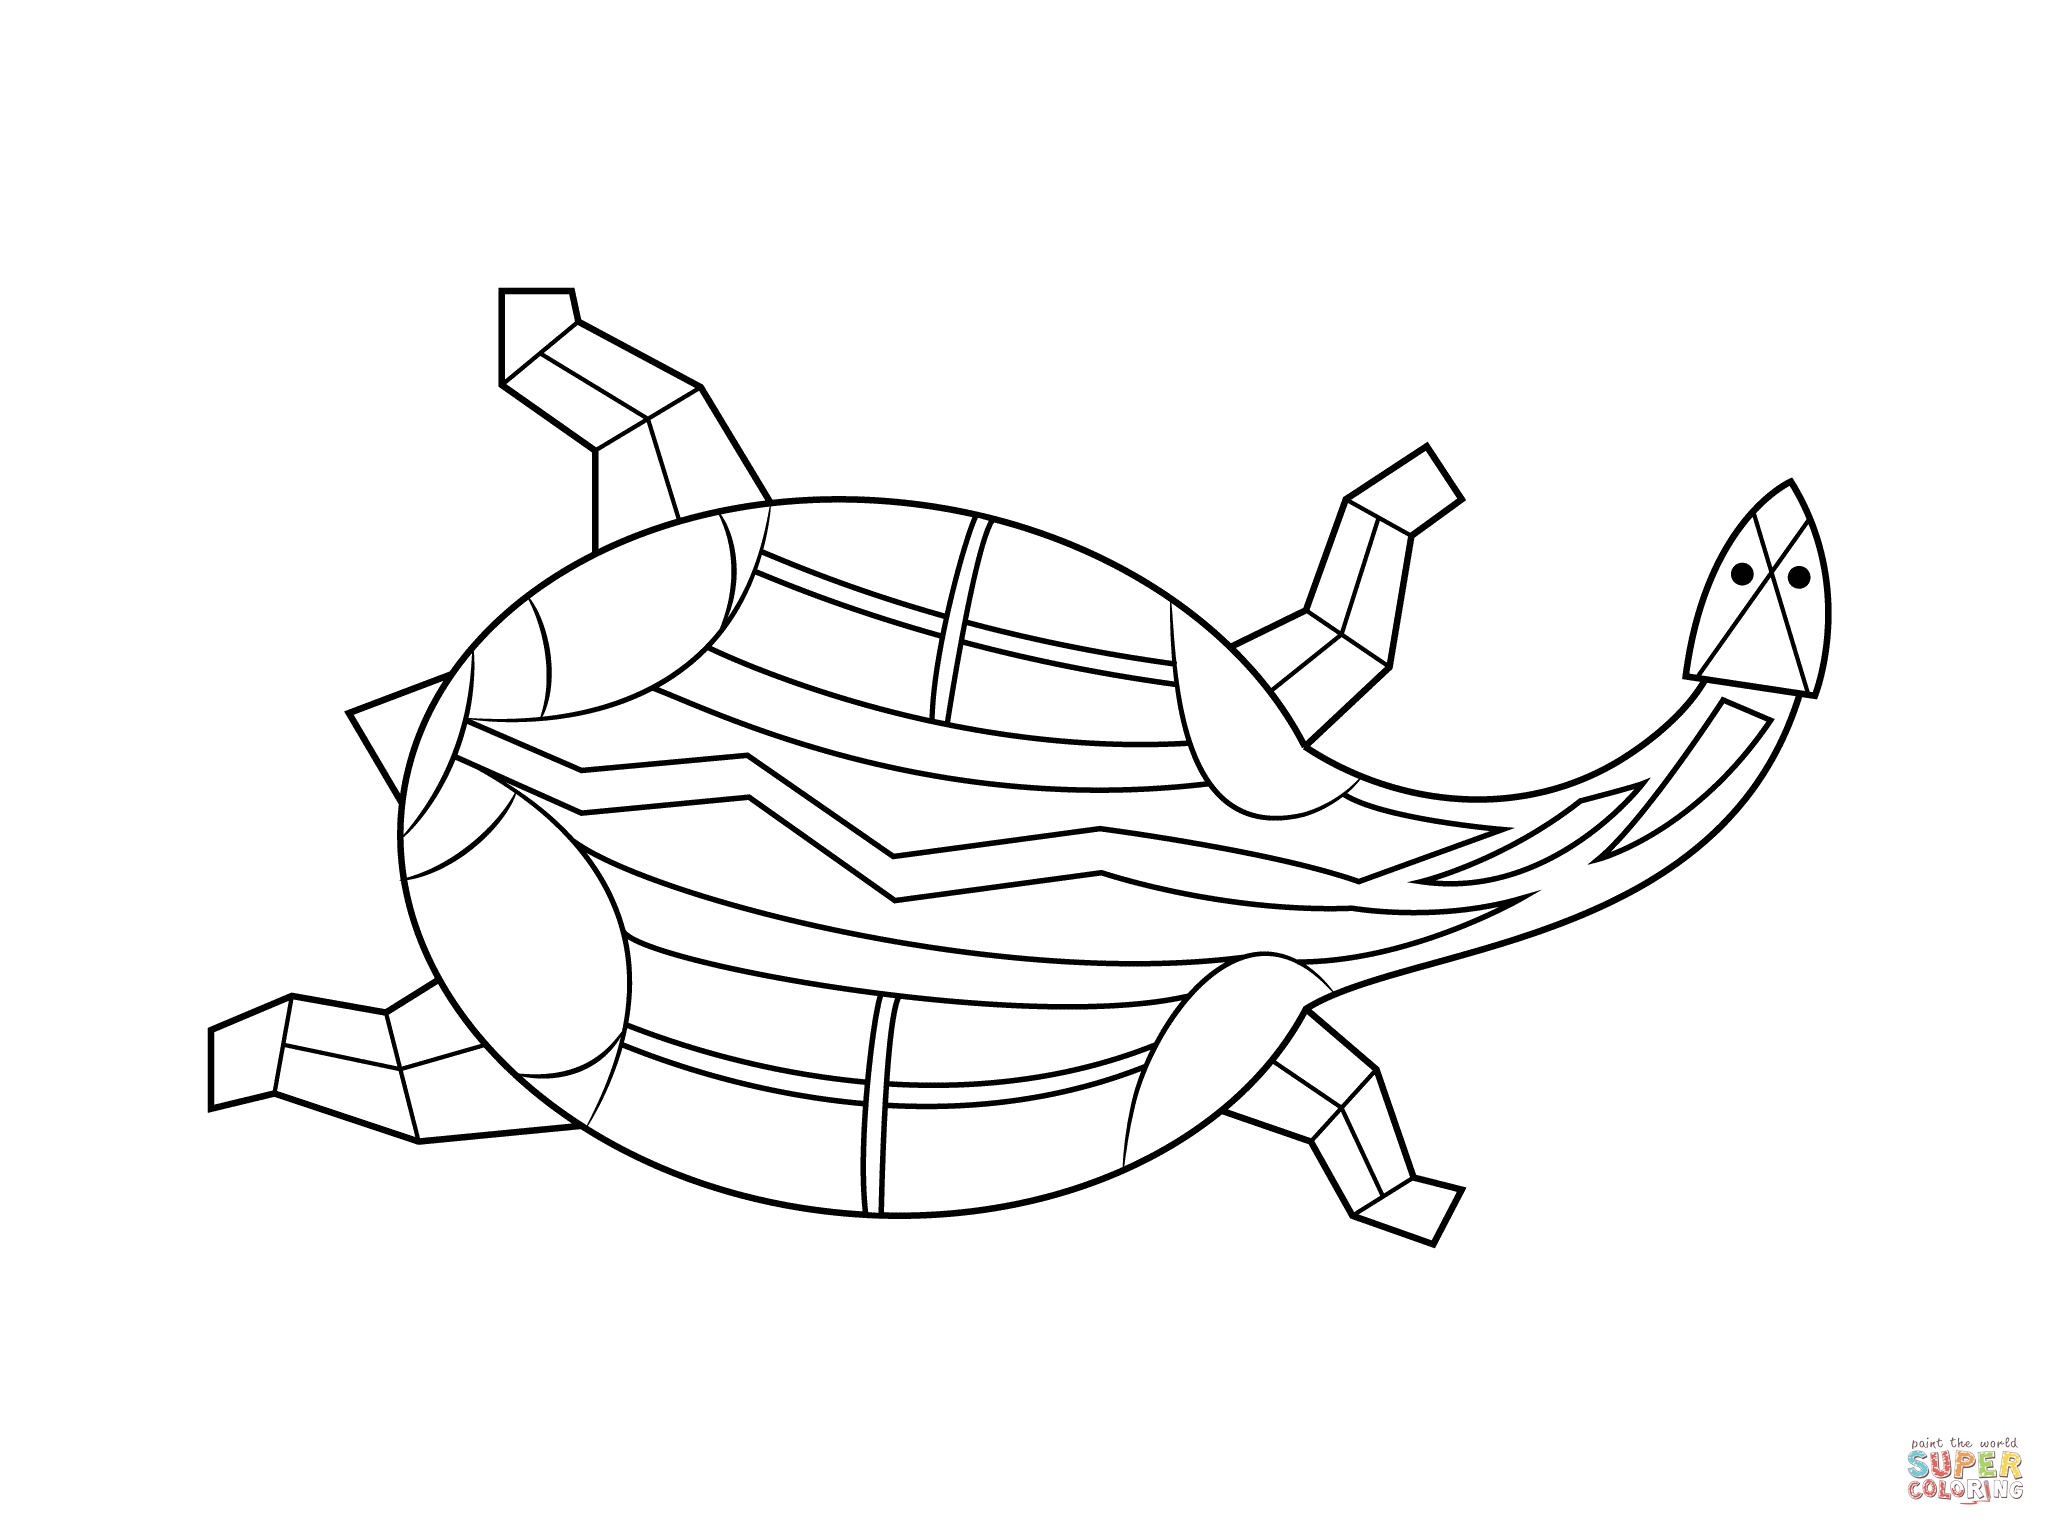 2046x1526 Unique Beach House Coloring Pages Free Coloring Pages